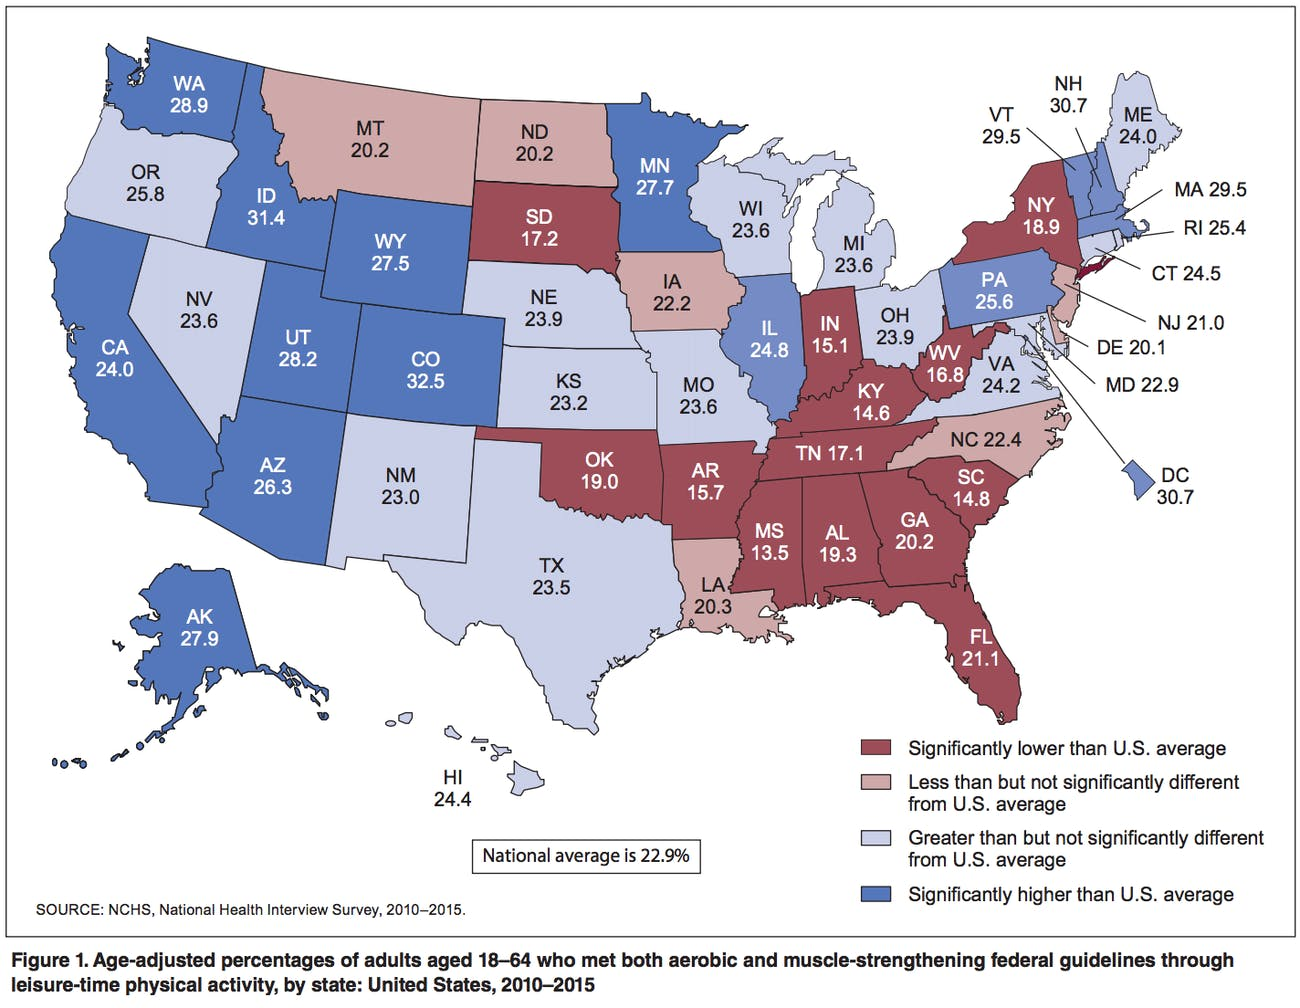 Age-adjusted percentages of adults aged 18-64 who met both aerobic and muscle-strengthening federal guidelines through leisure-time physical activity, by state, exercise